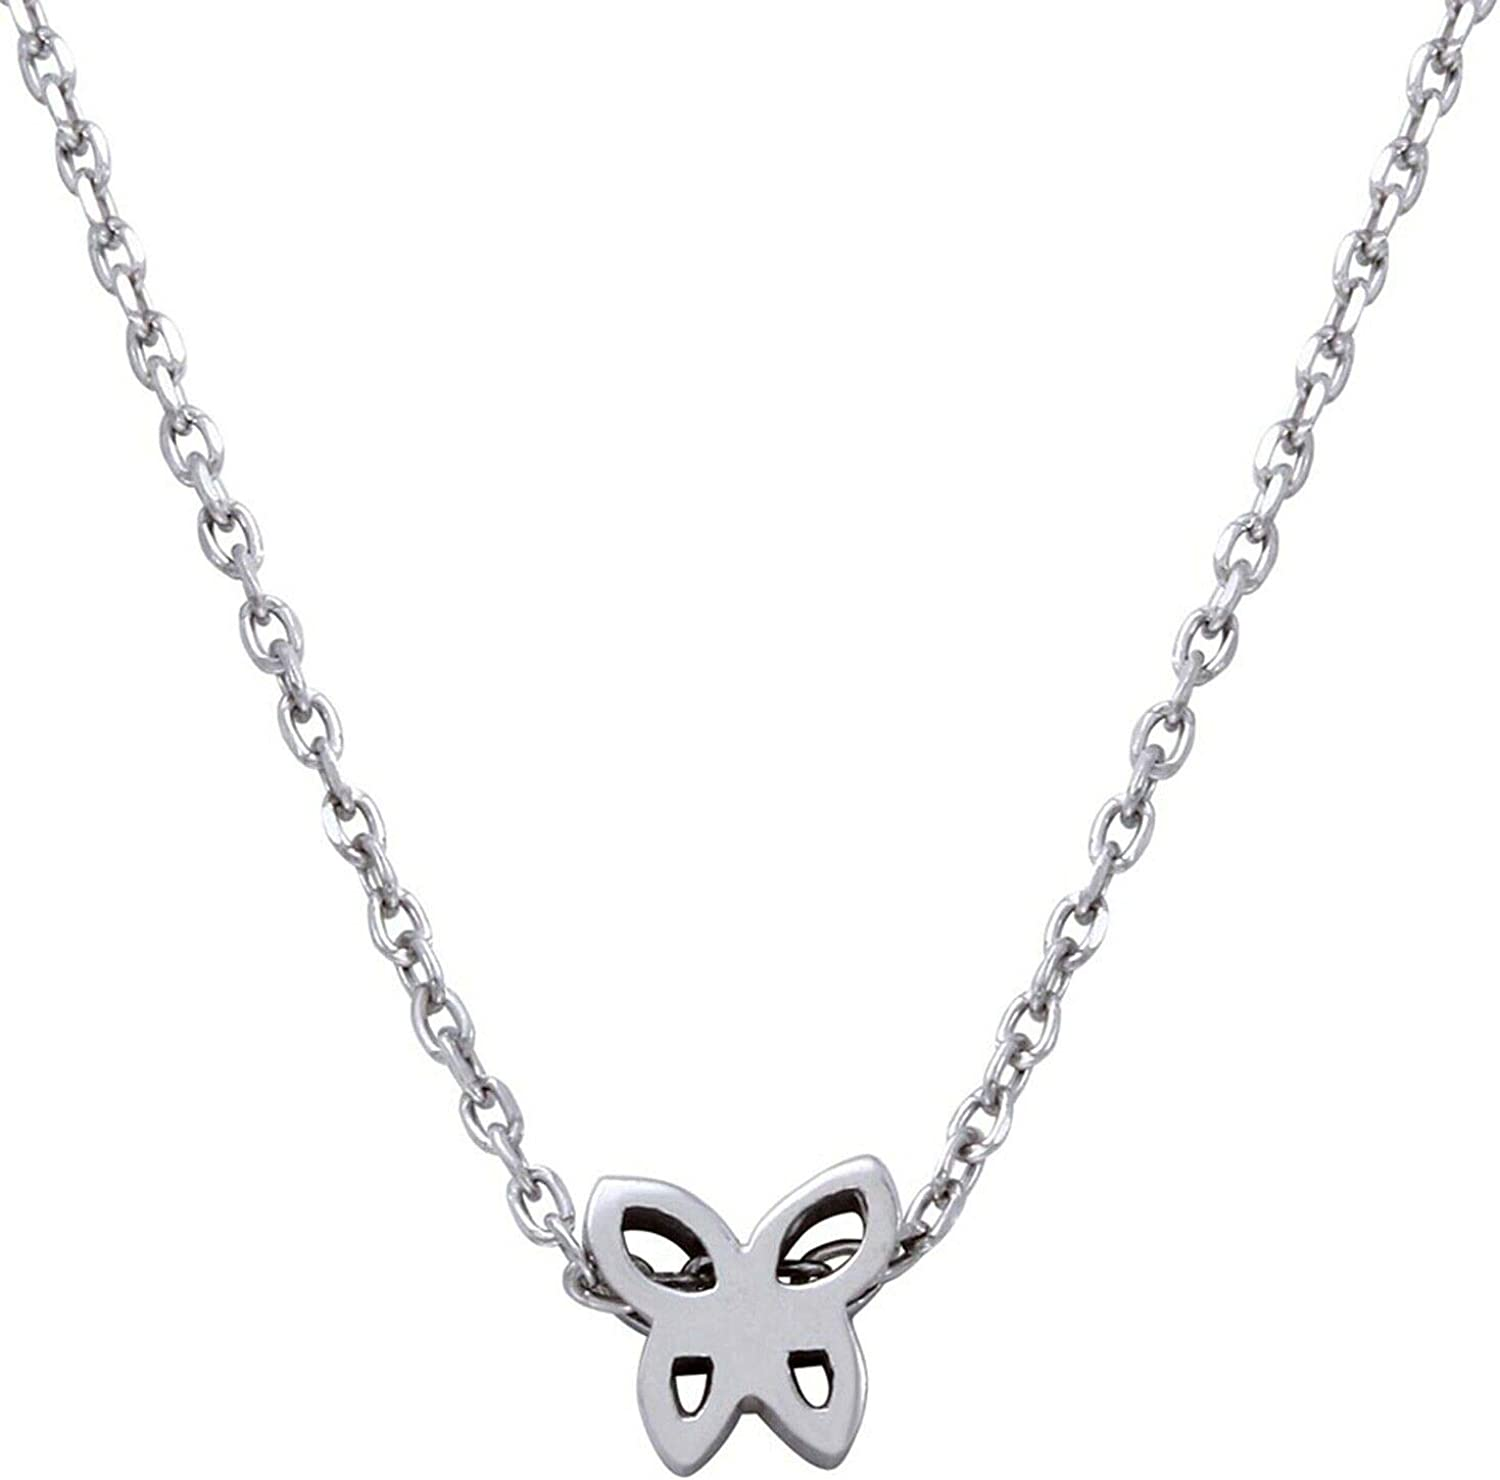 Indi Lowest price challenge New mail order Gold Diamond Jewelry Created Butterfly Nec Pendant Dainty